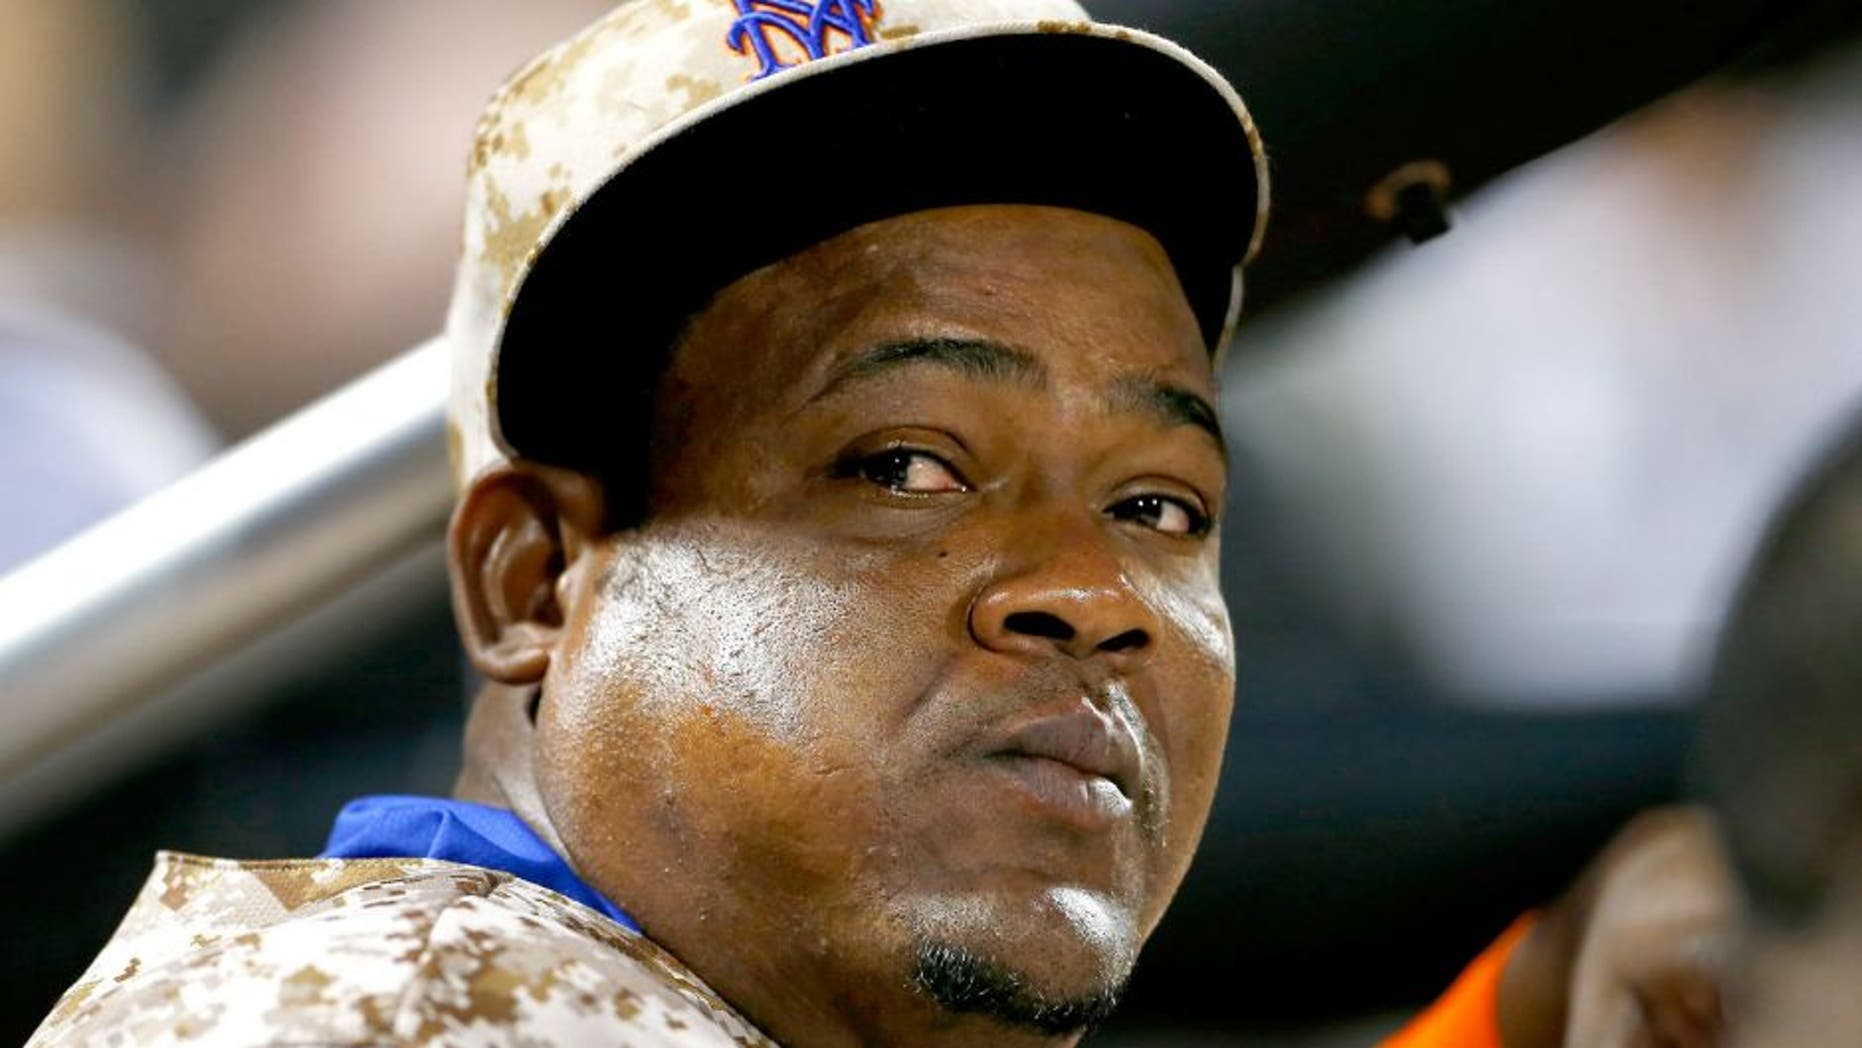 NEW YORK, NY - AUGUST 31: Juan Uribe #2 of the New York Mets looks on from the dugout against the Philadelphia Phillies on August 31, 2015 at Citi Field in the Flushing neighborhood of the Queens borough of New York City. (Photo by Rich Schultz/Getty Images)